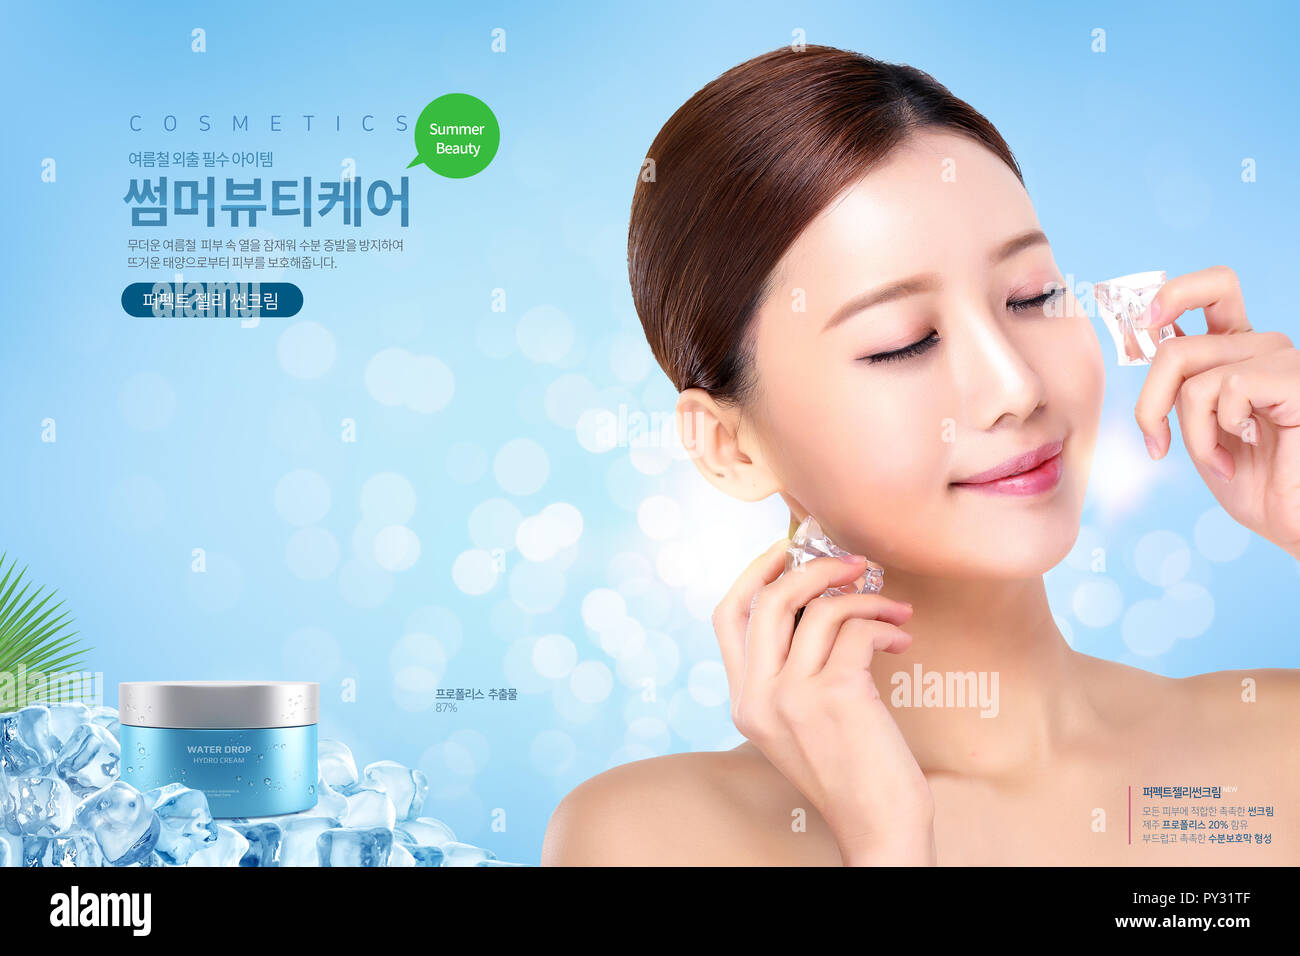 Beautiful Asian Woman Skin Care Concept Beauty Cosmetics Posters Banners Design 009 Stock Photo Alamy